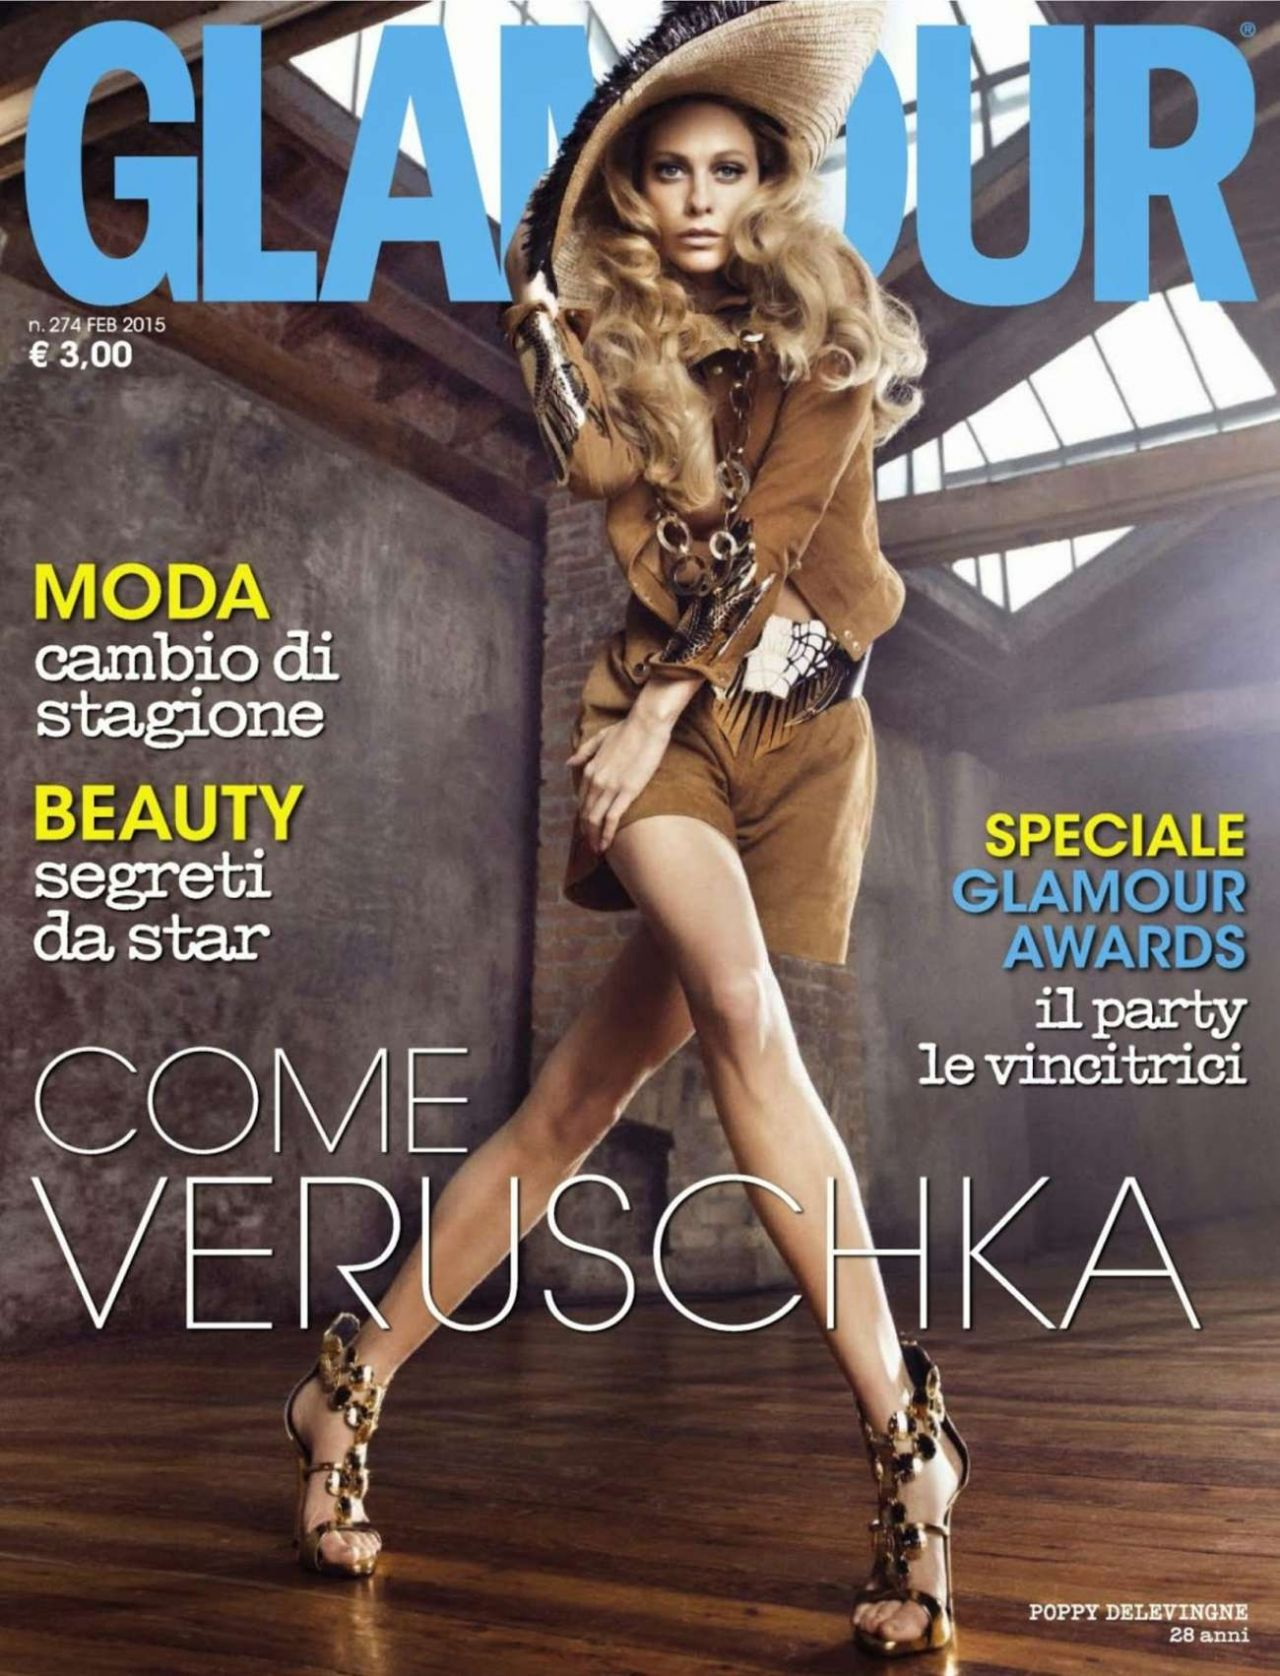 Poppy Delevingne – Glamour Magazine (Italy) February 2015 Issue